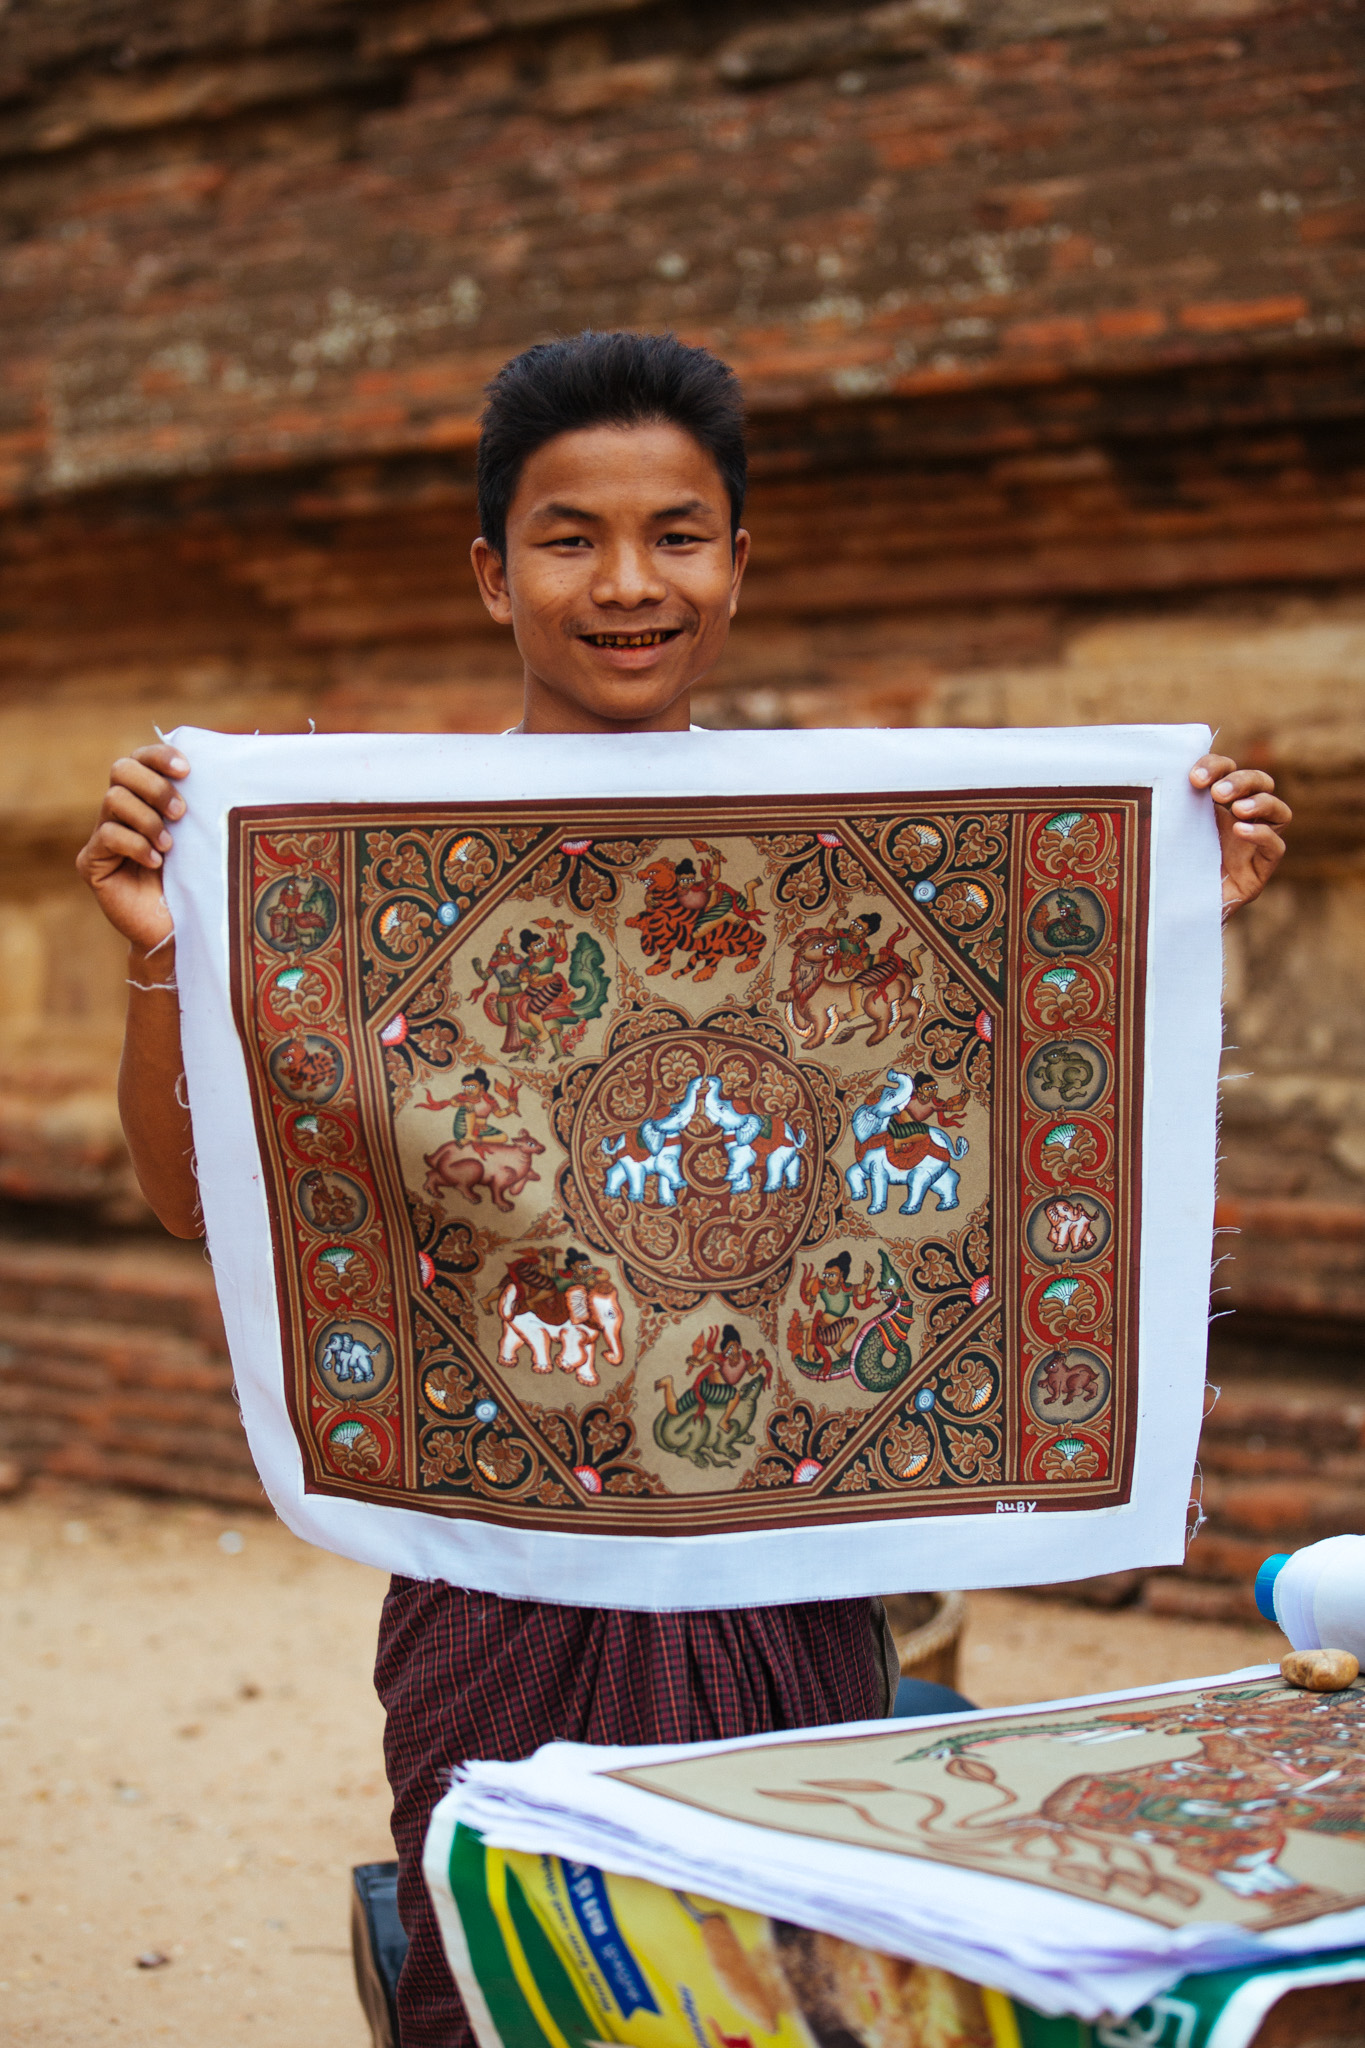 Ruby, one of the peddlers I met showing off his sand paintings. These are intricately detailed pieces with fine coloured sand glued to the fabric